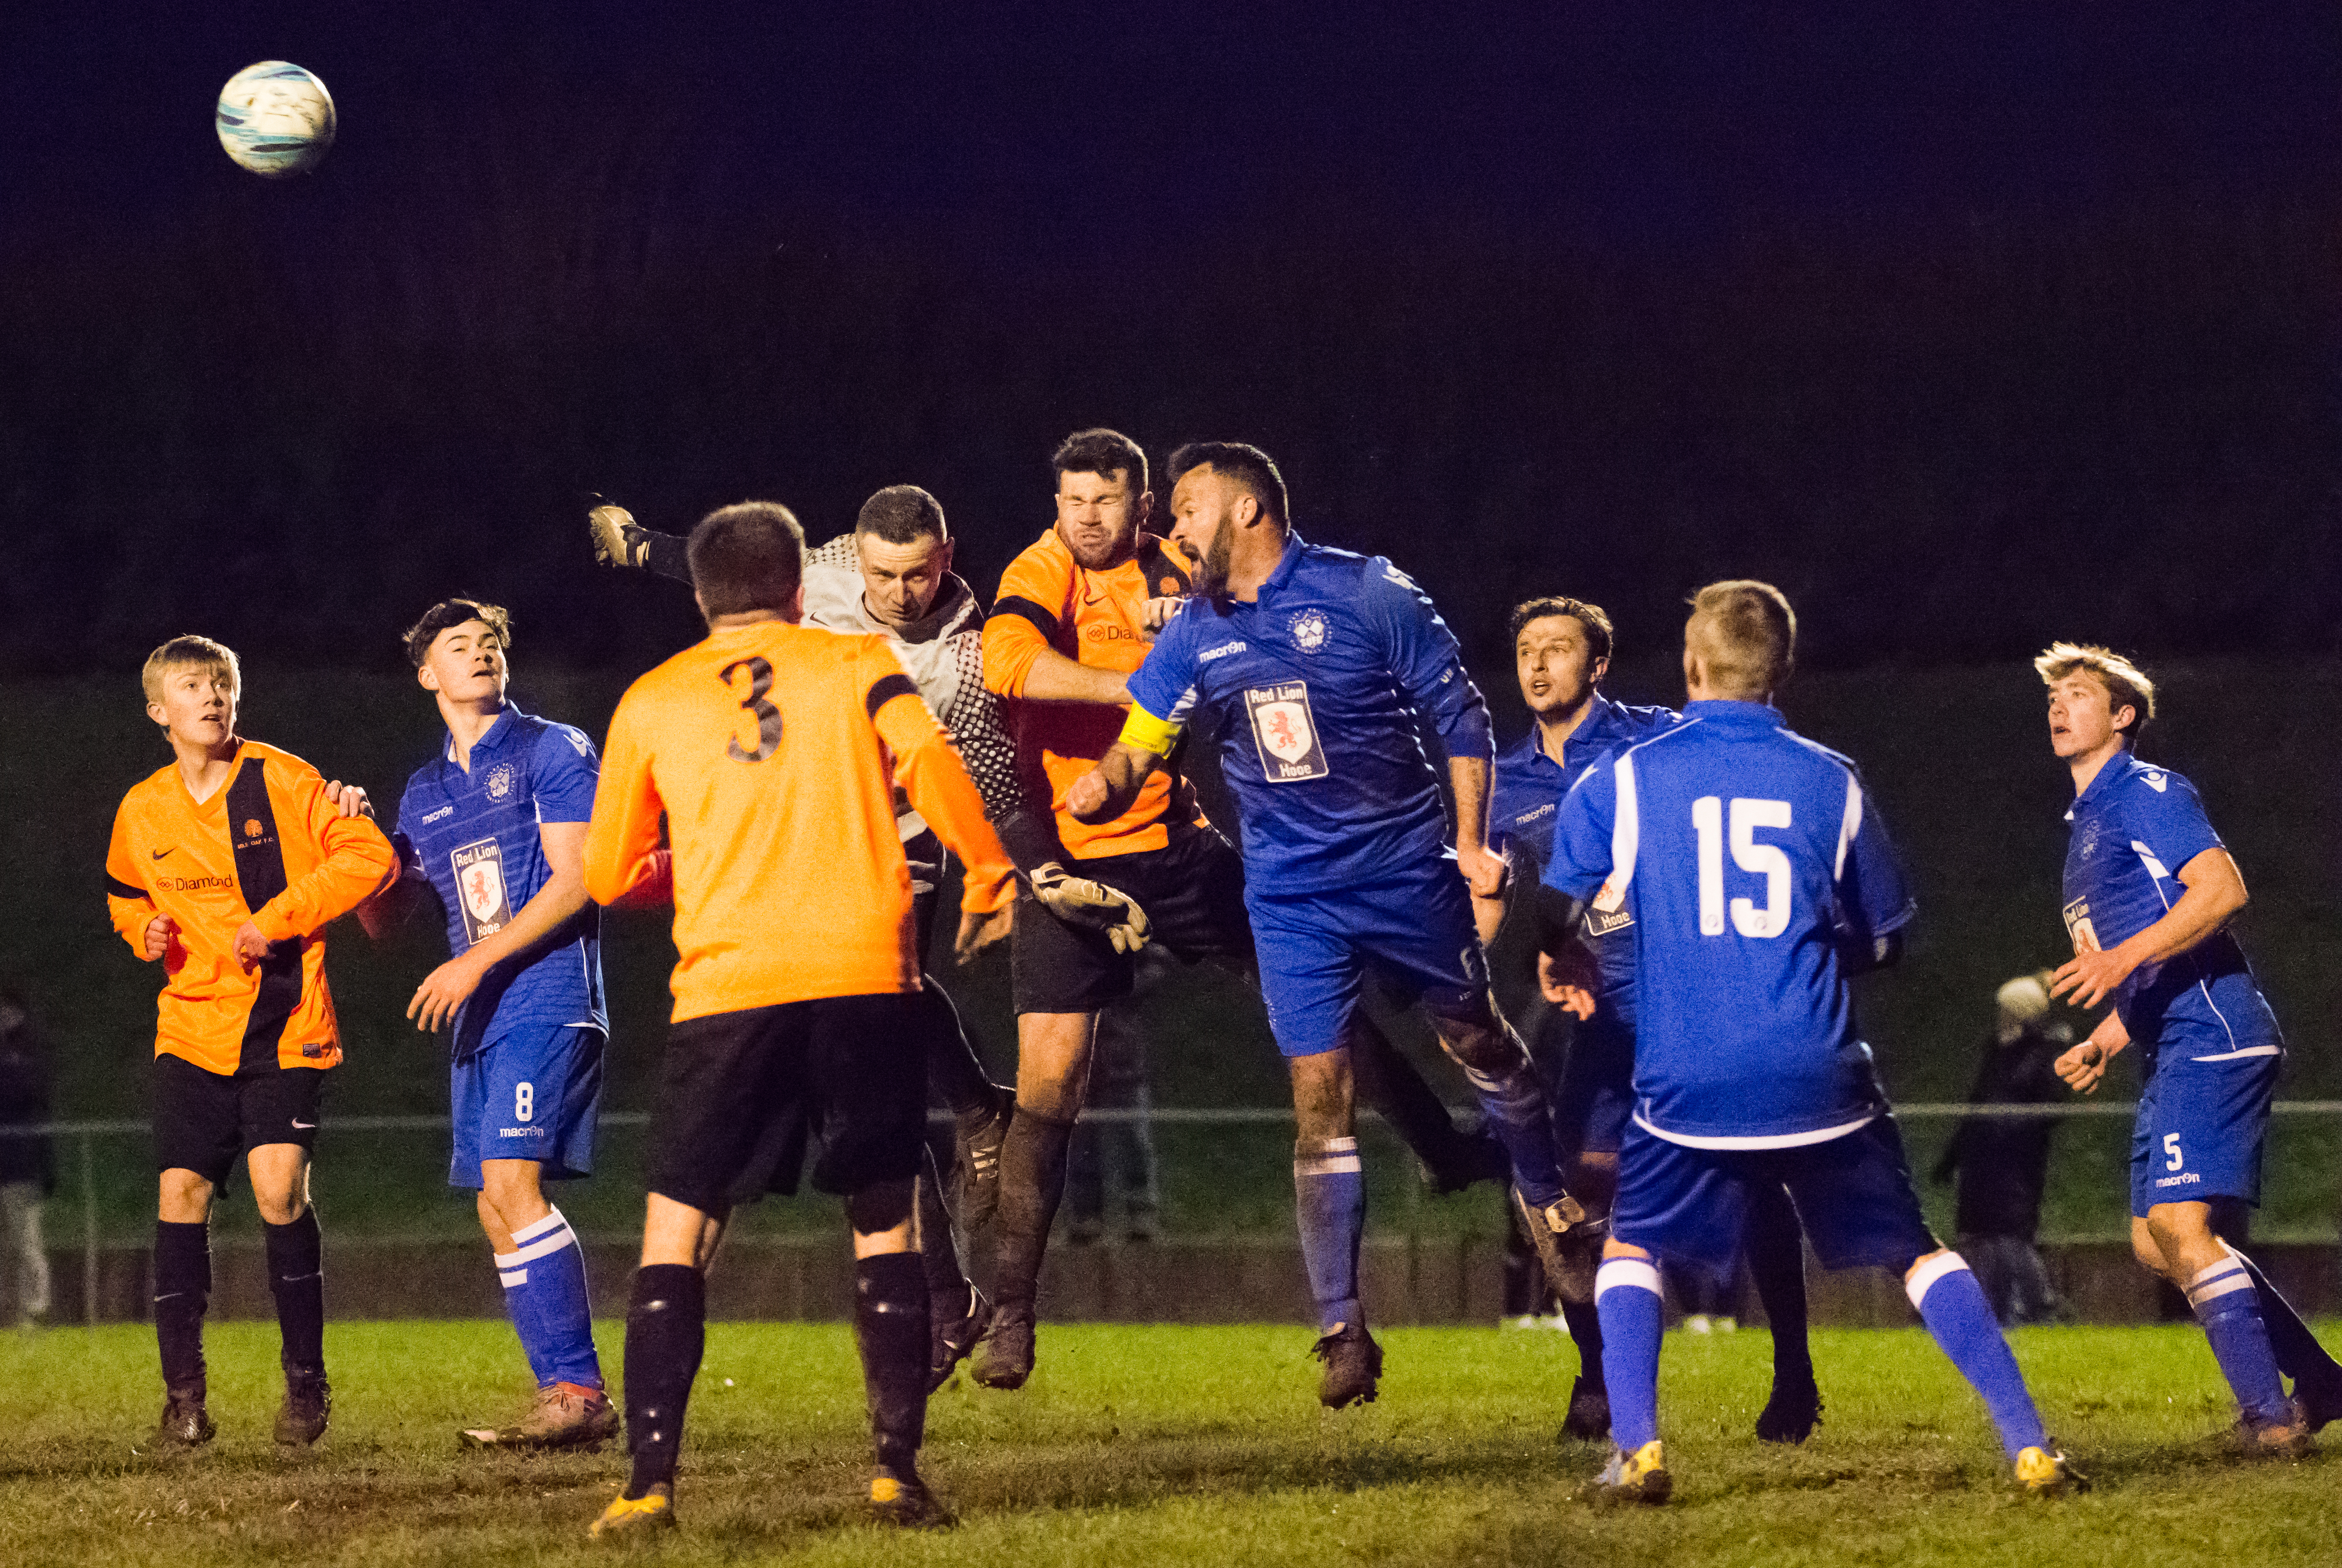 Mile Oak Res vs Sidley United 09.12.17 55